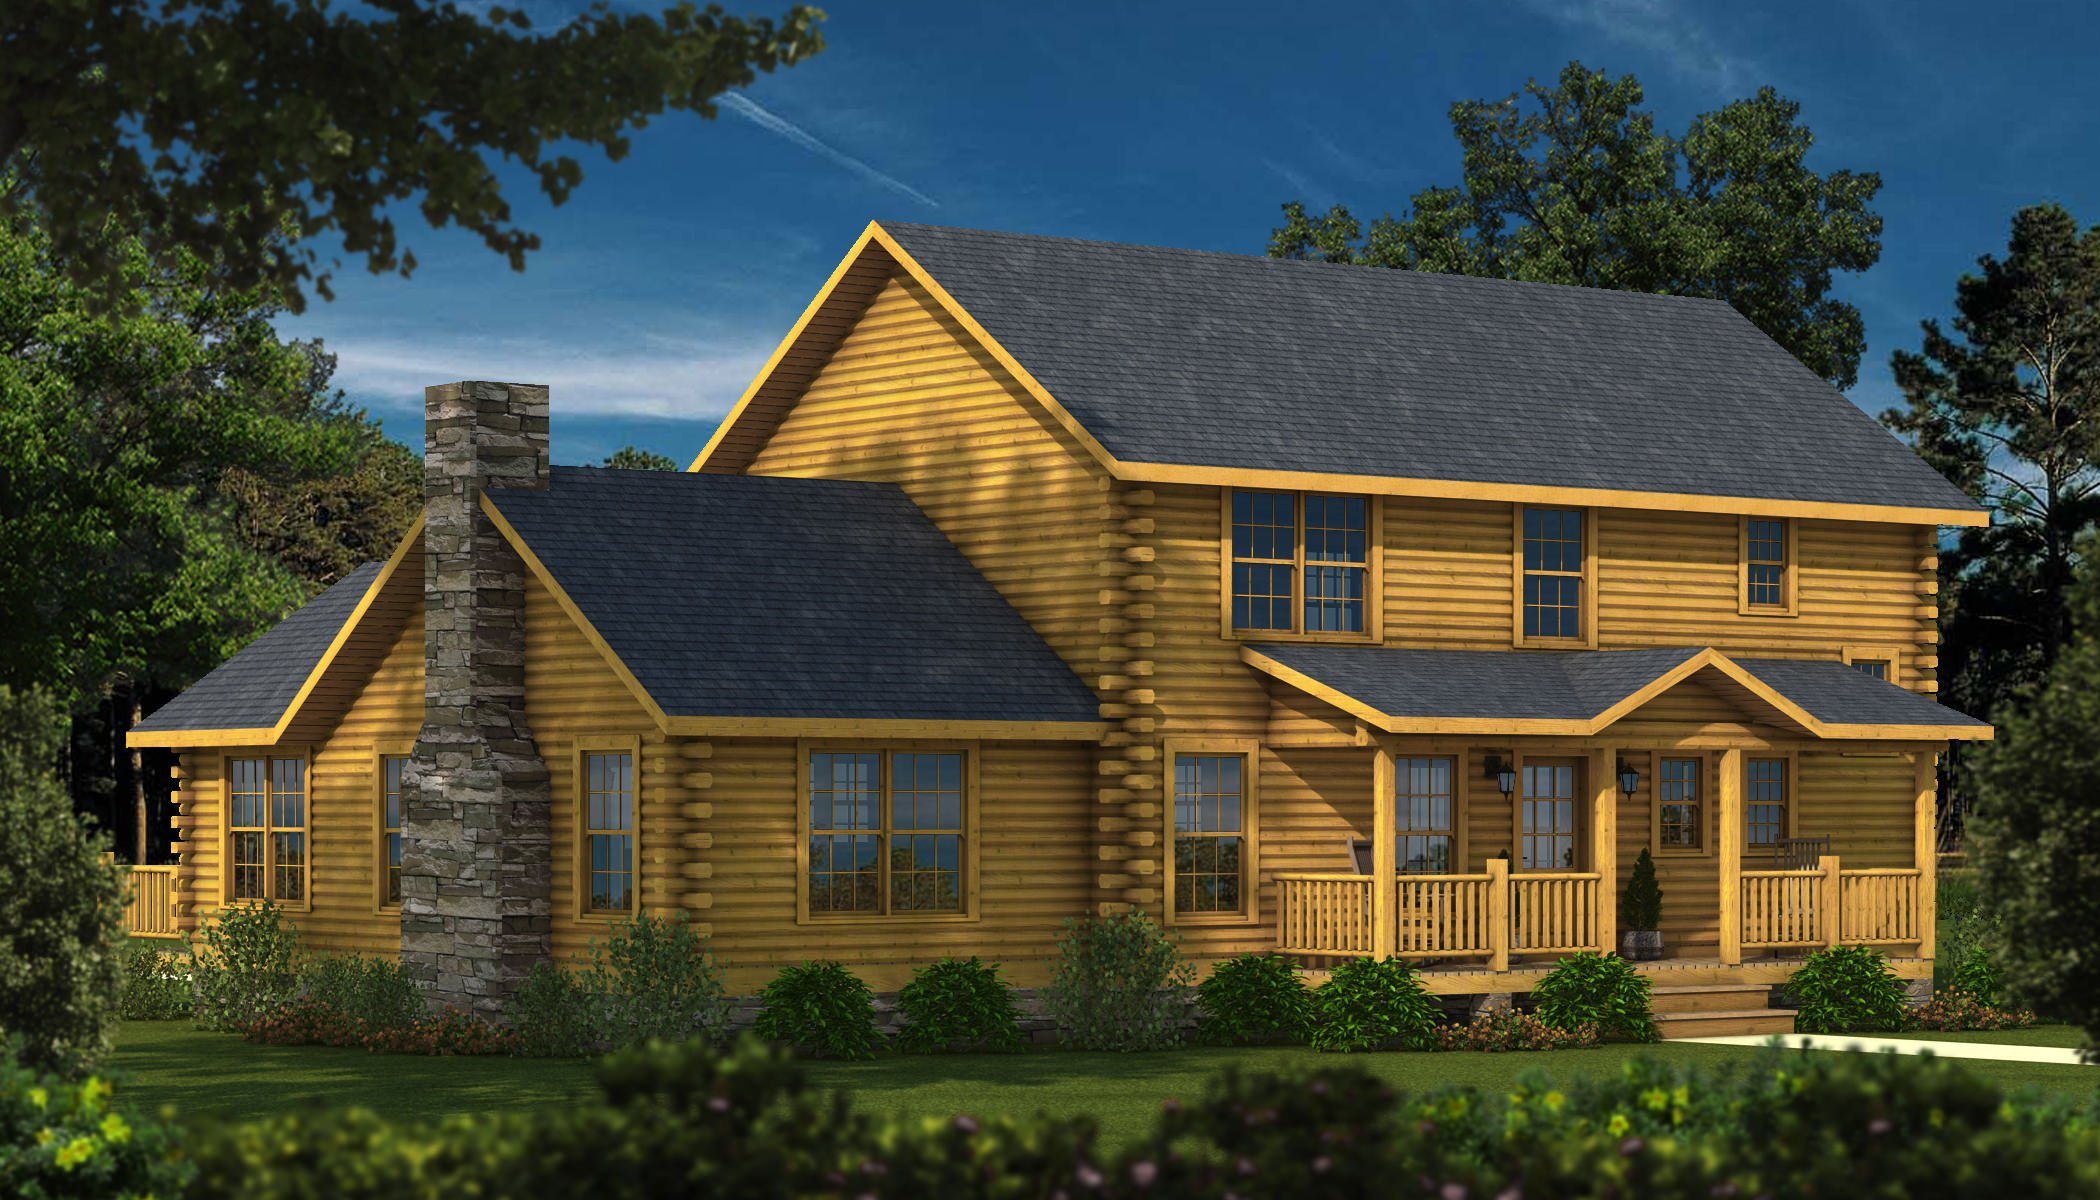 Twin_Pines_Front_1 Southland Log Homes House Plans on phoenix luxury homes, southland homes kitchens, southland custom homes, lake homes, southland homes layout, stone river rock homes, clearance on modular homes, kansas city homes,